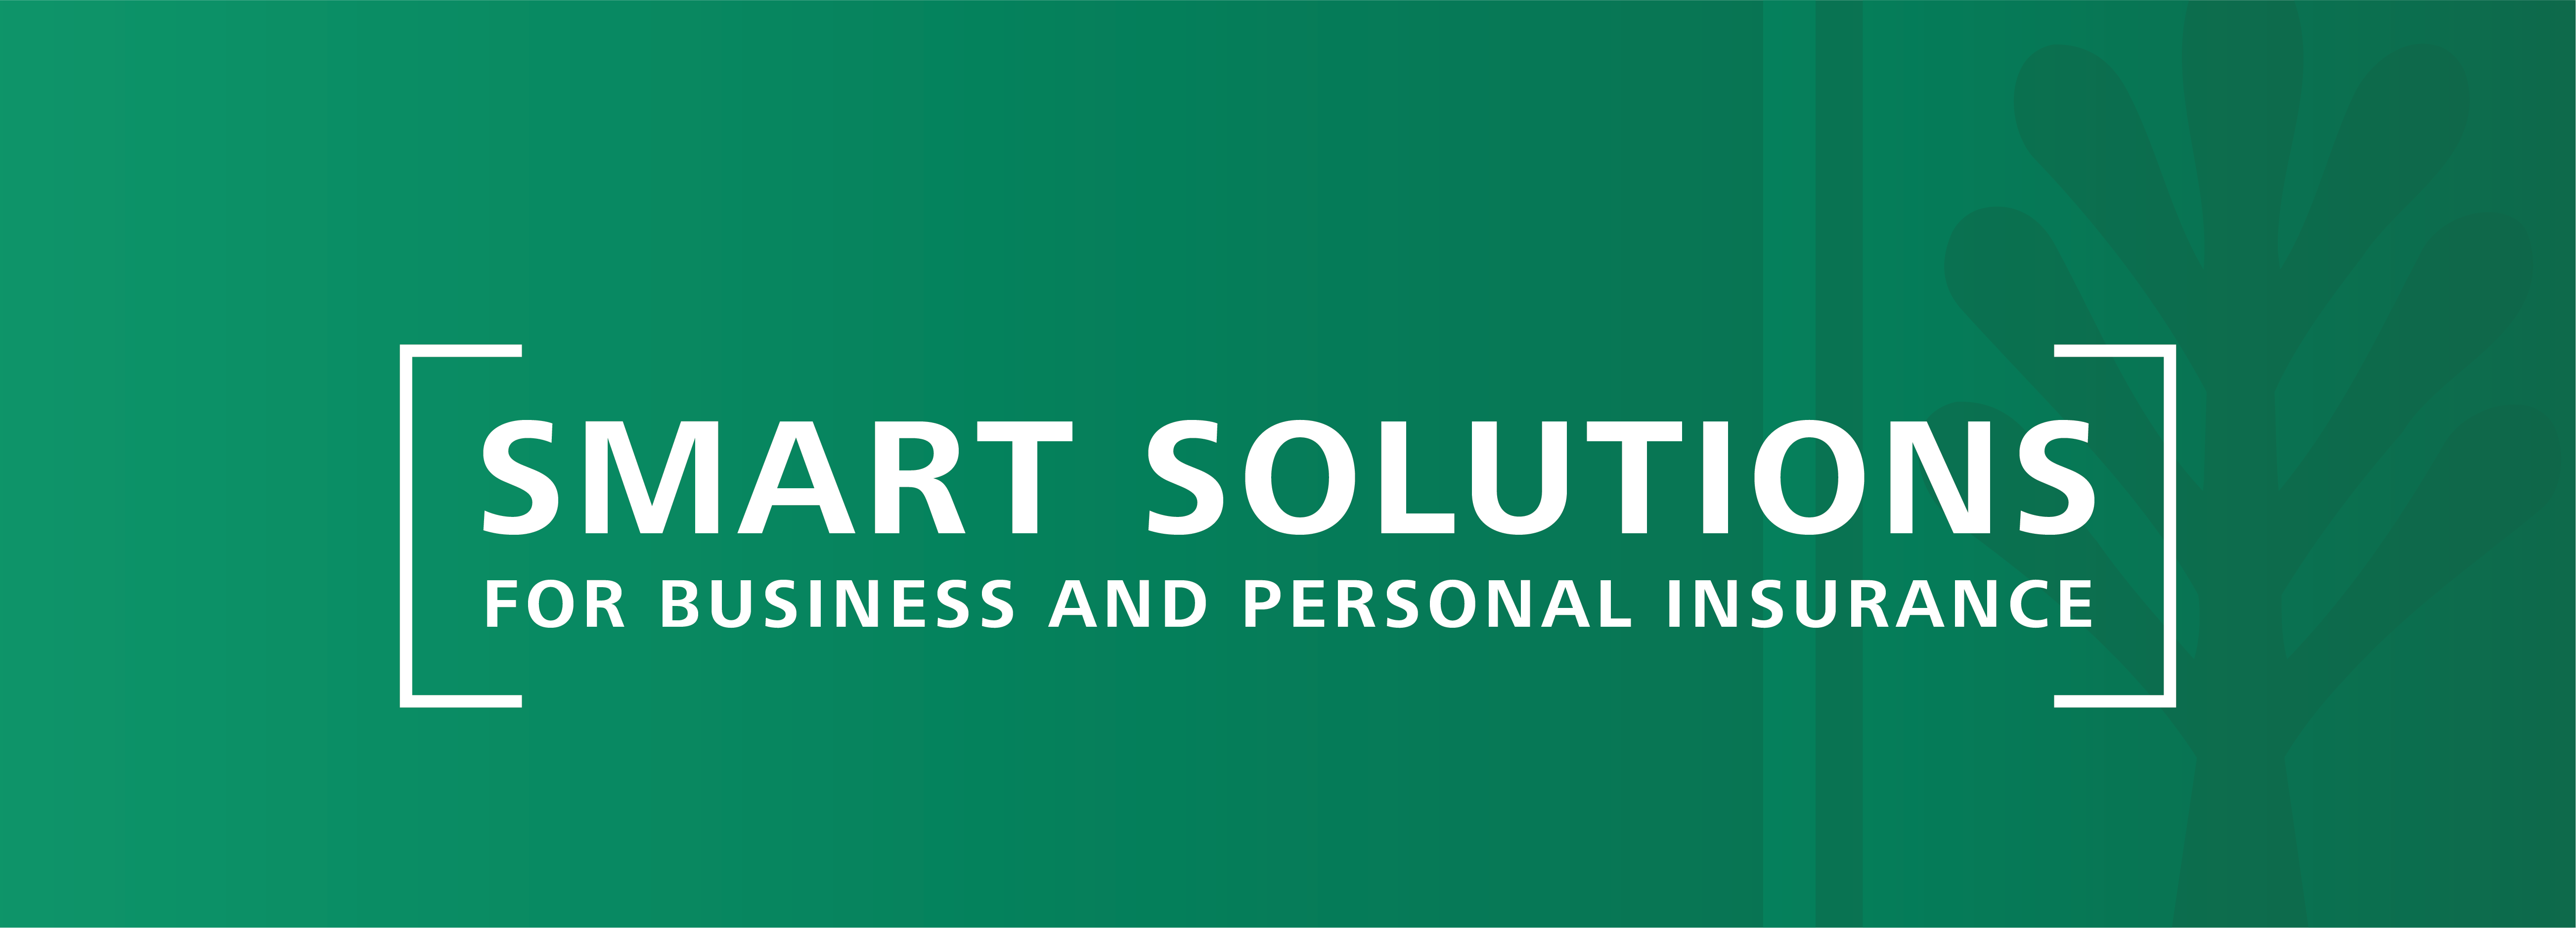 Smart Solutions for Business and personal Insurance